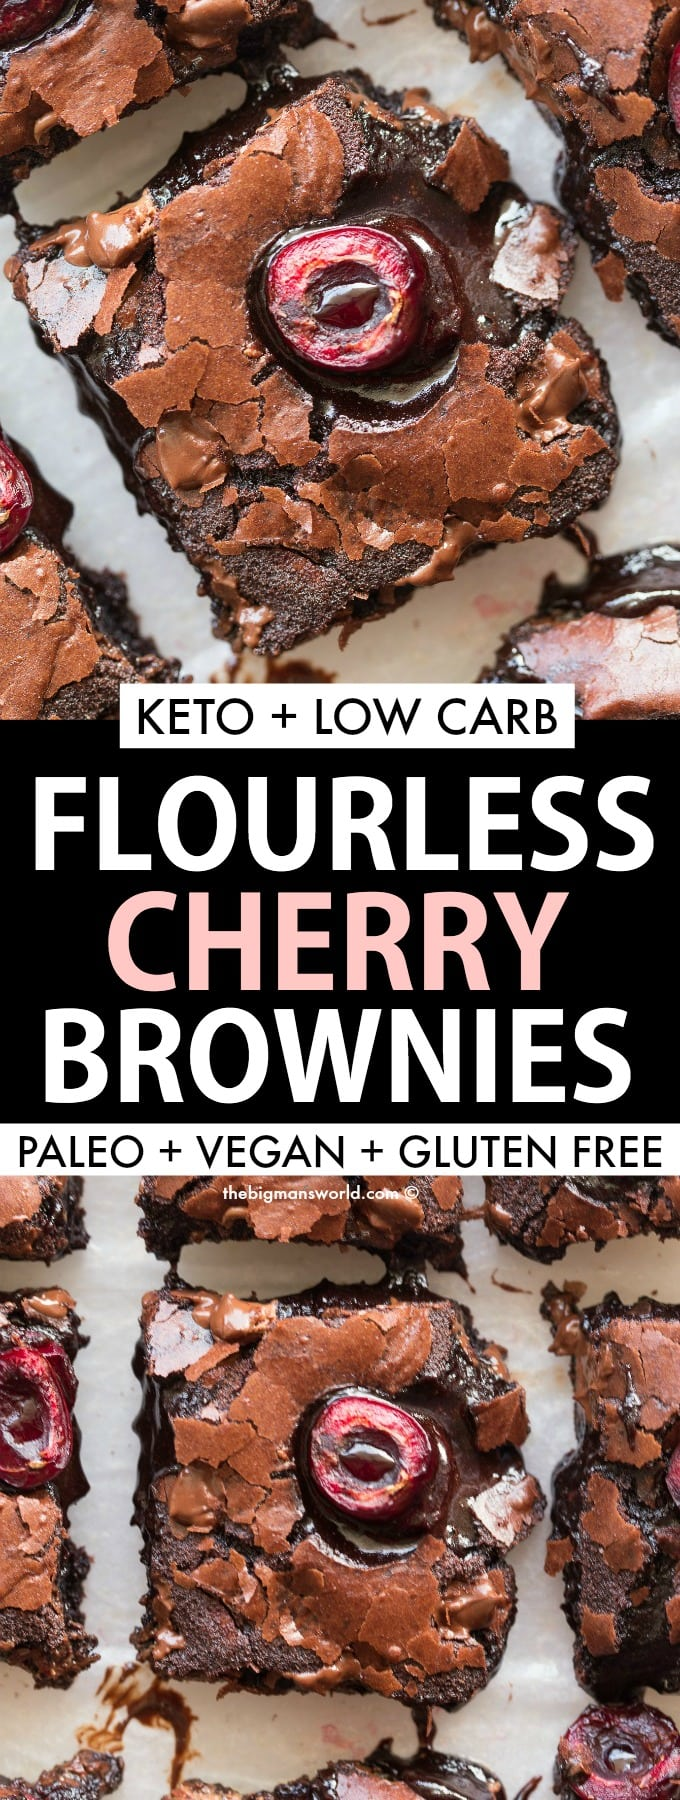 Gooey fudgy chocolate flourless brownies with cherries added in them- Keto and Low Carb